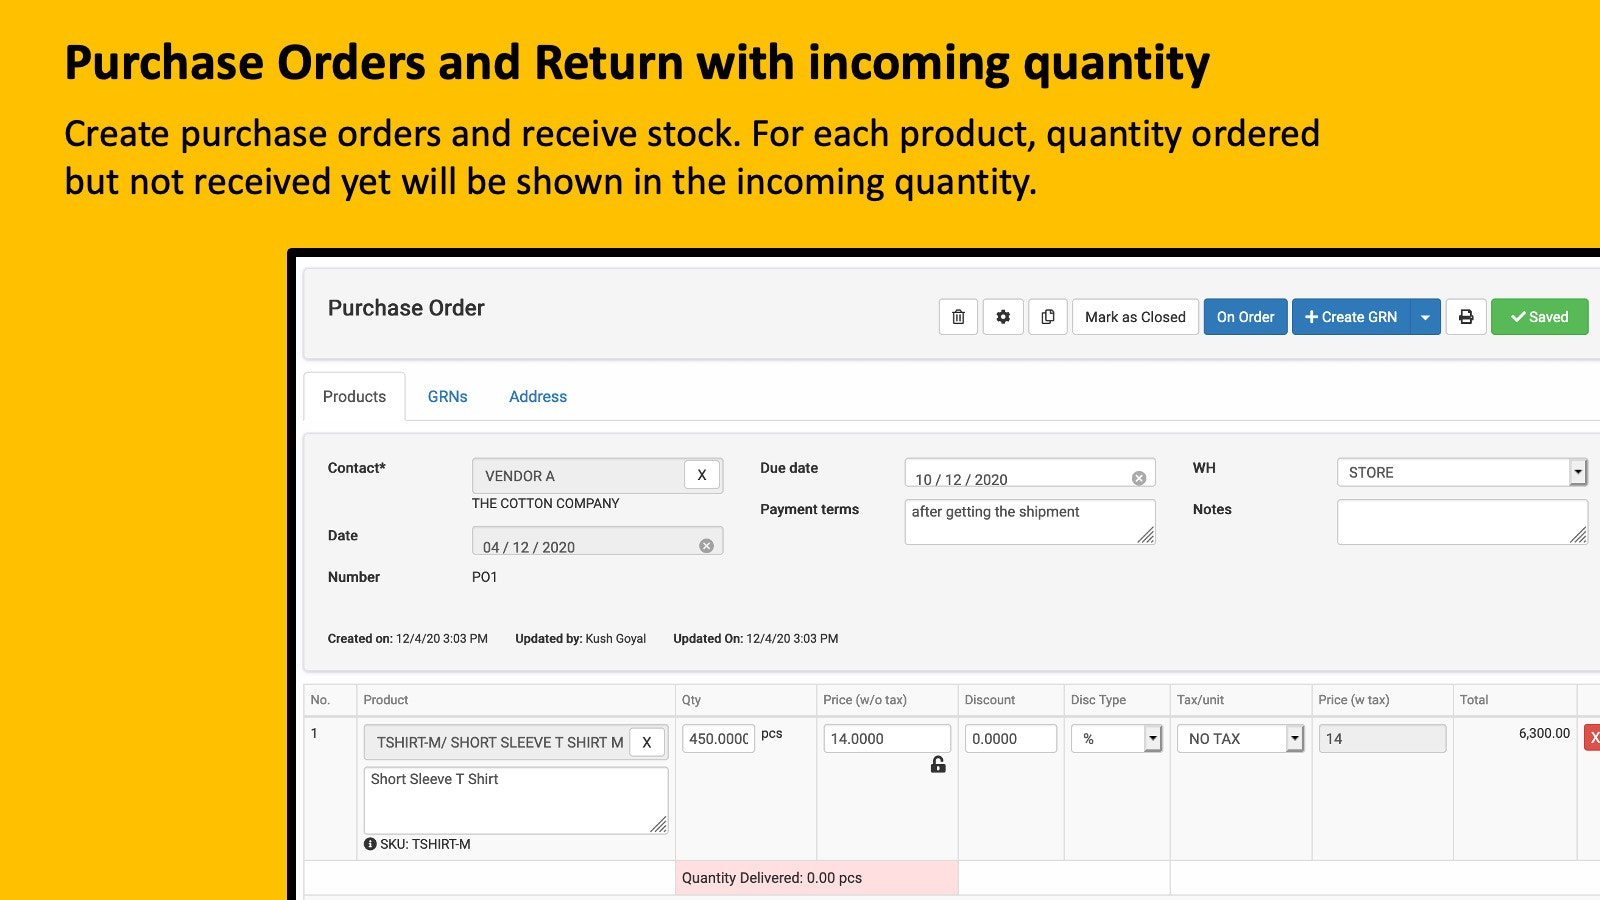 Purchase Orders with incoming quantity